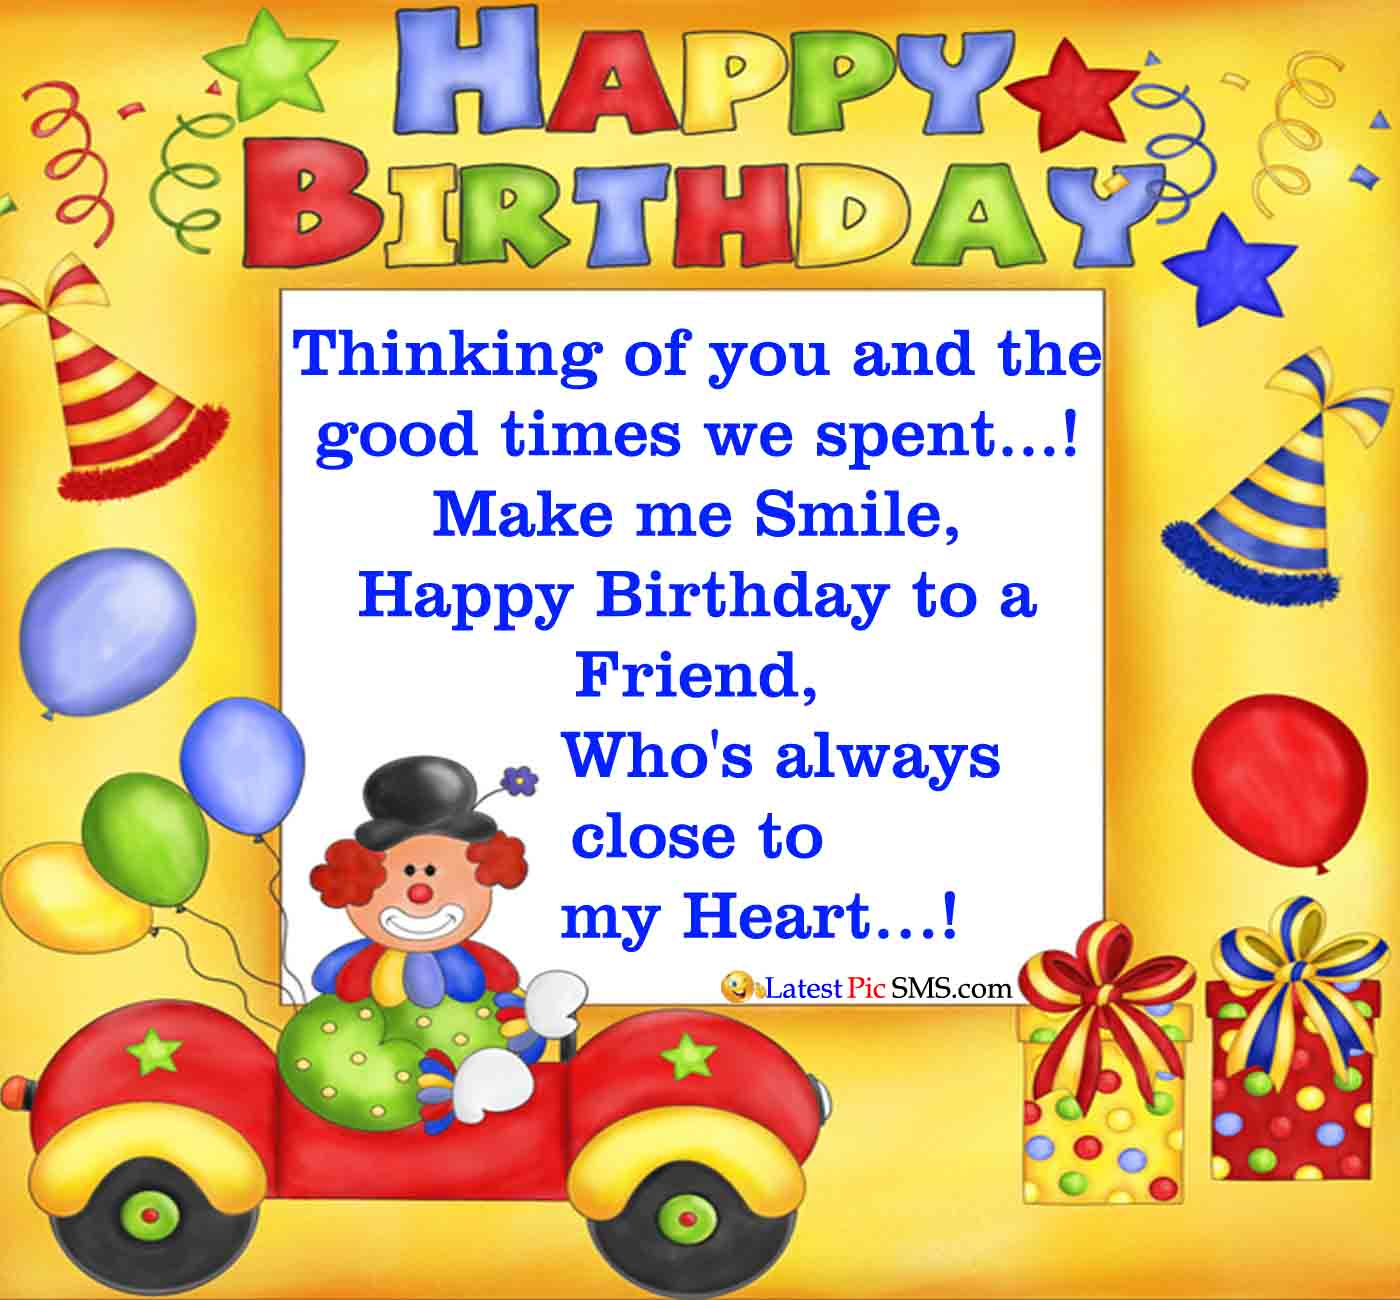 Birthday Wishes For A Friend On Her